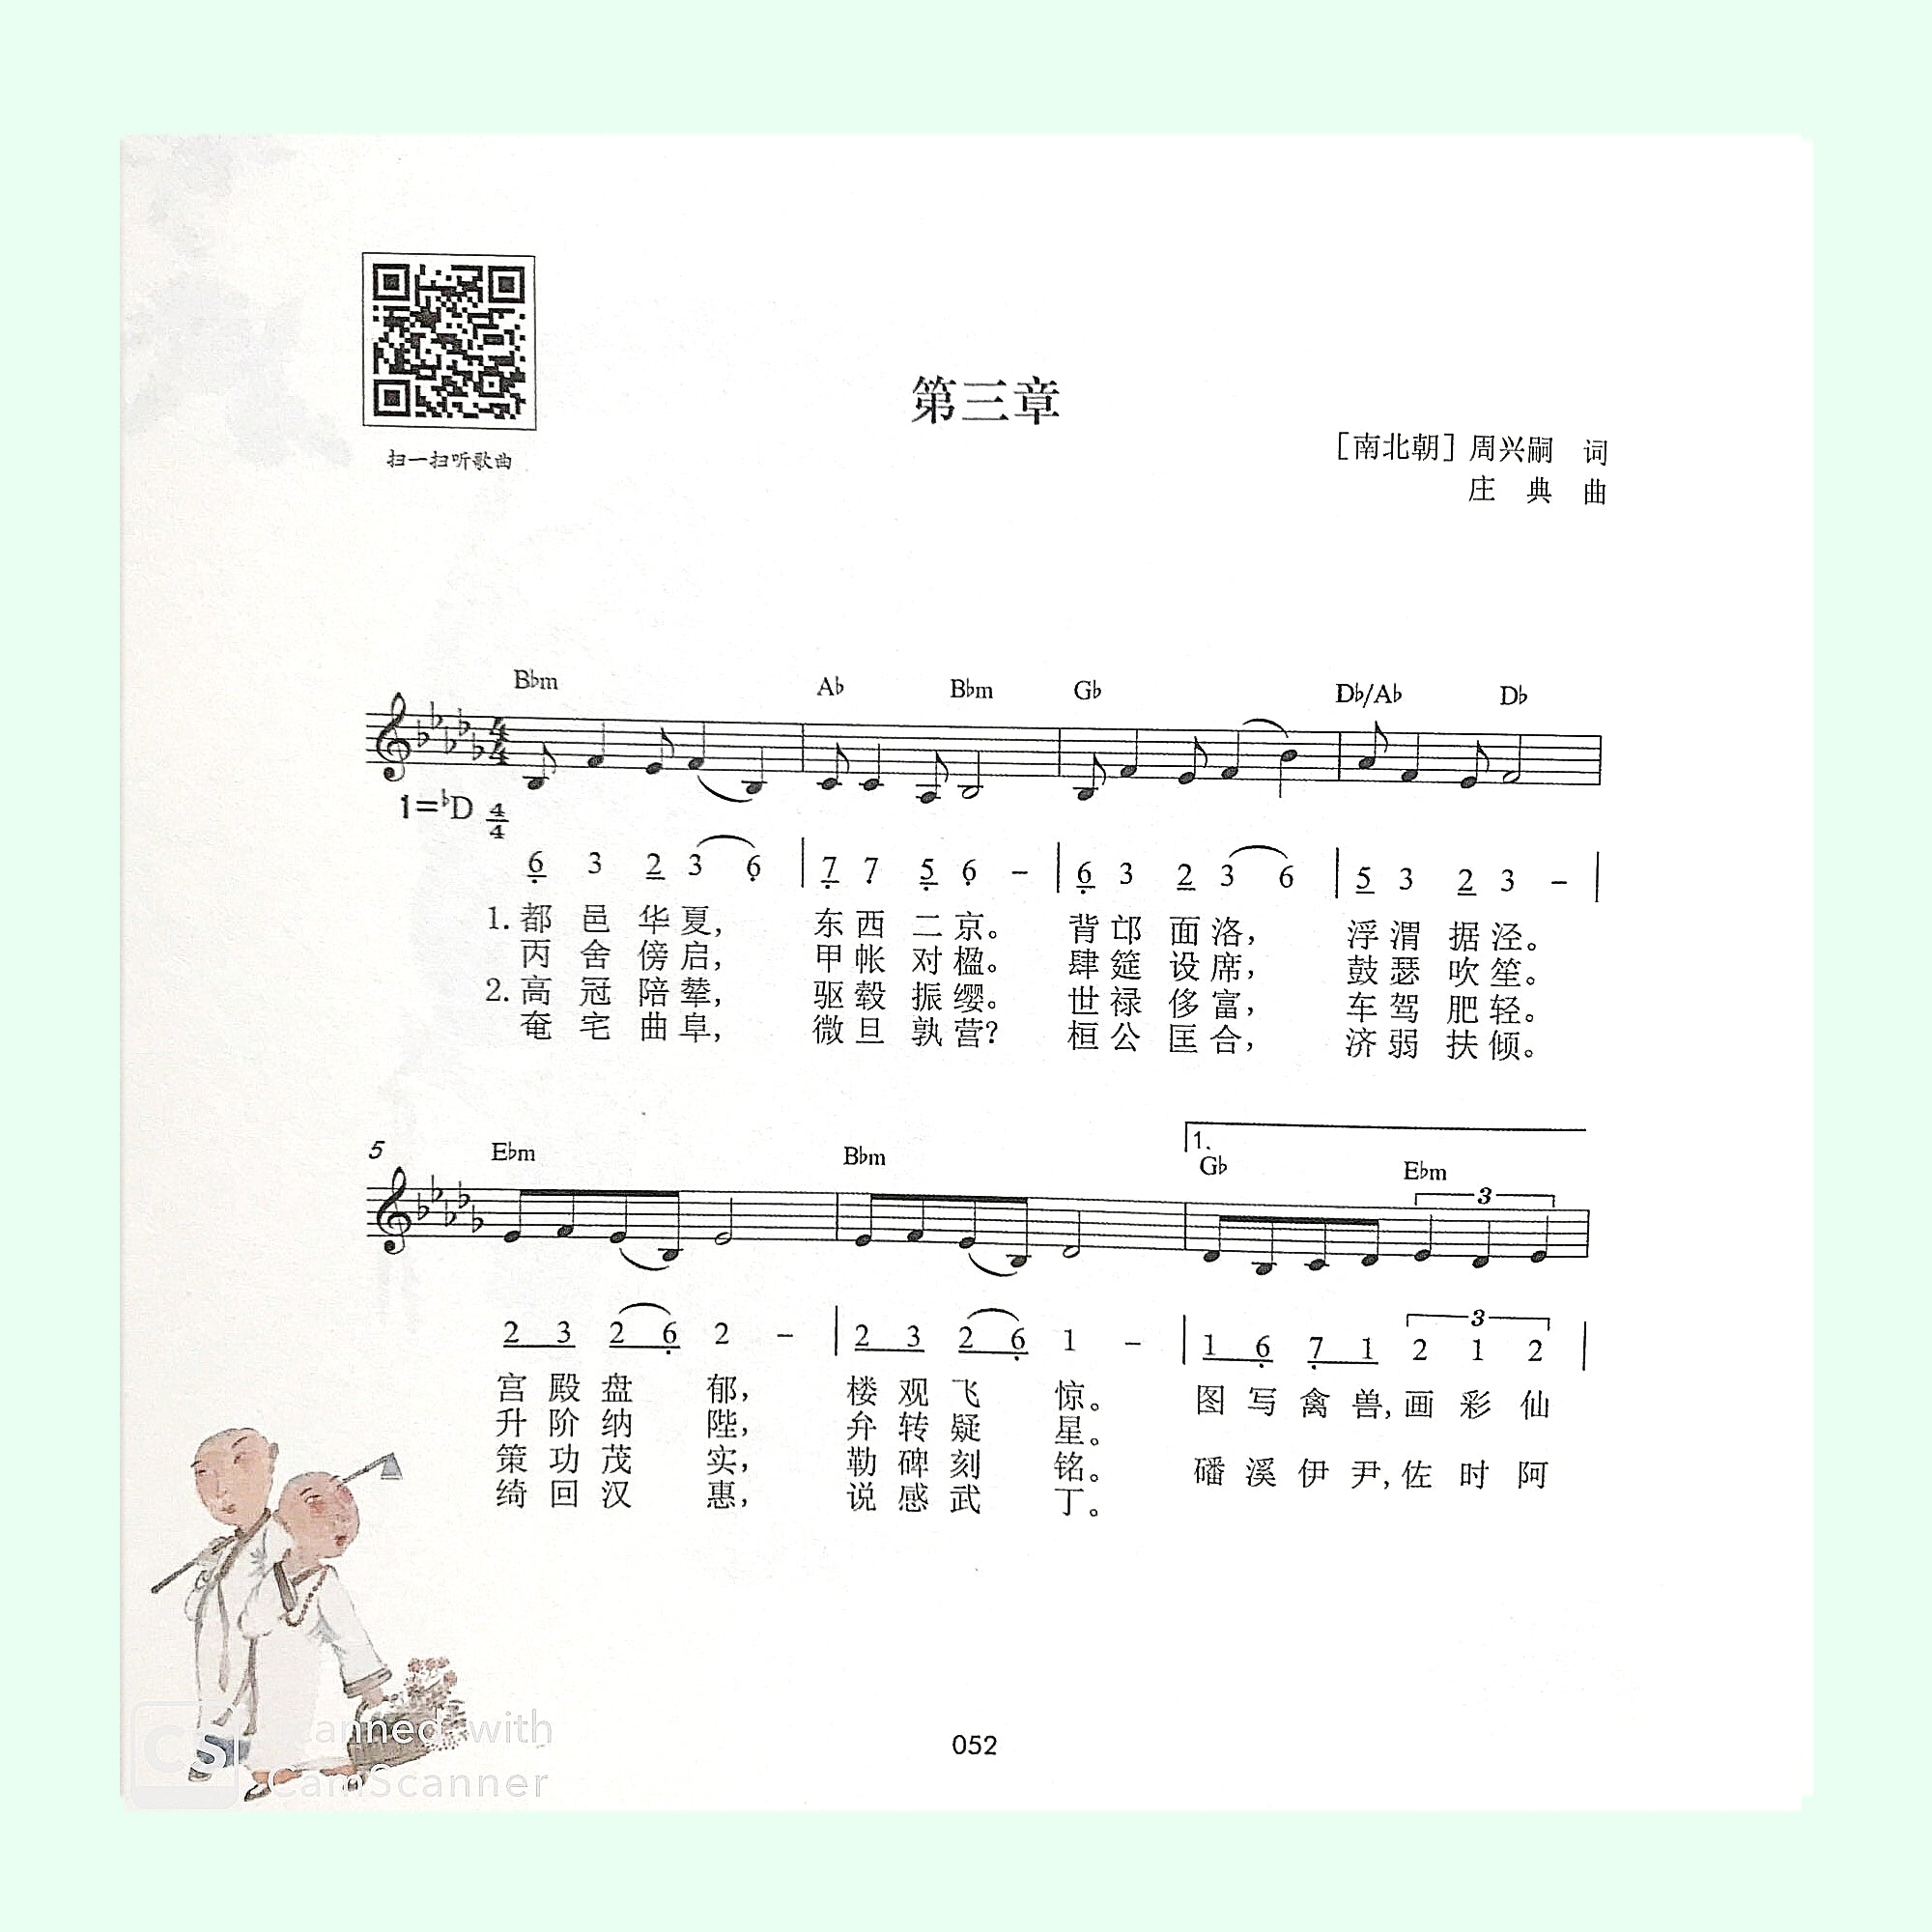 Thousand Character Classic for Kids 教孩子唱学千字文 - Hantastic Kids